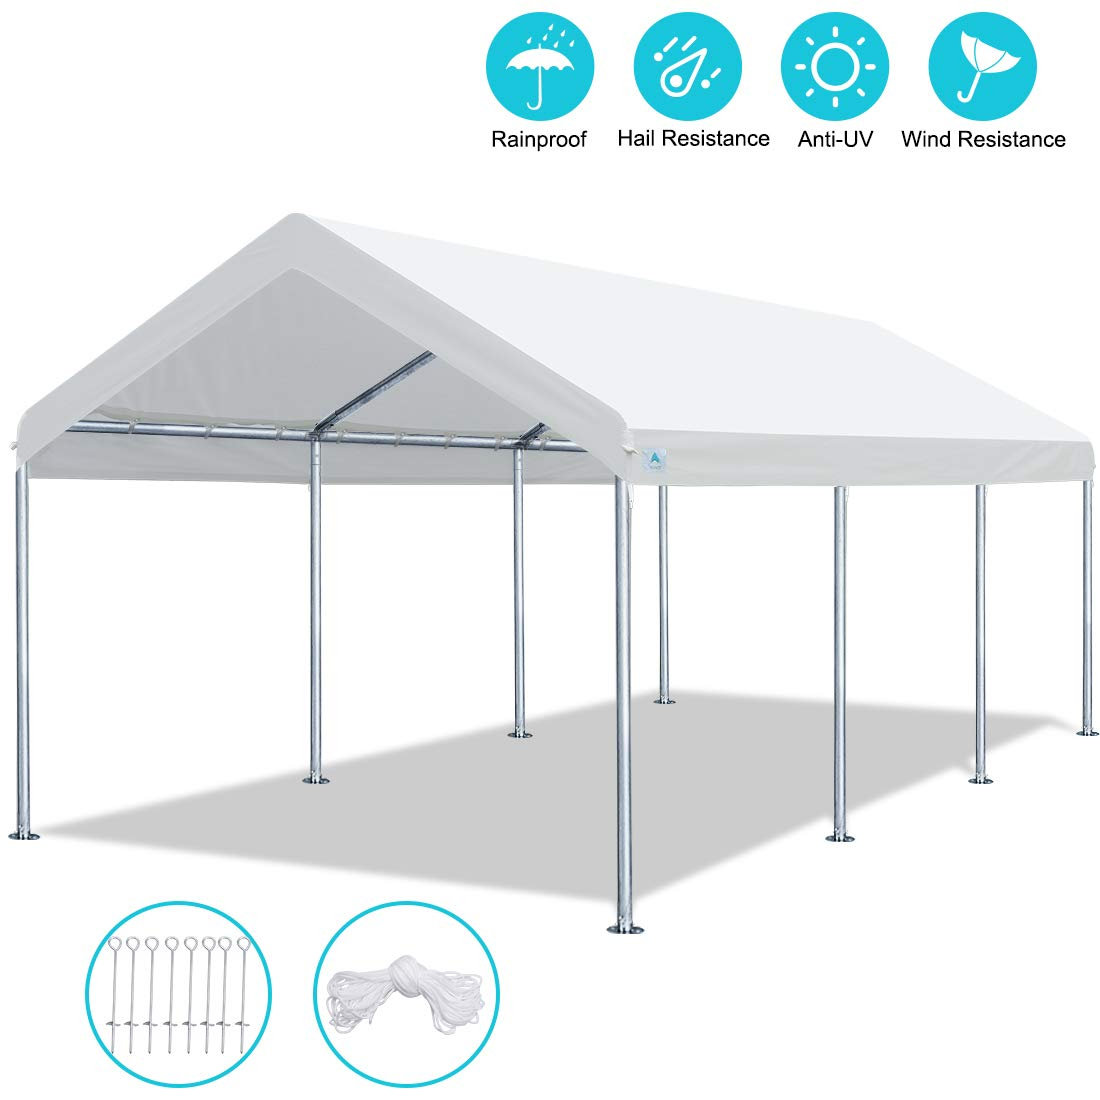 ADVANCE OUTDOOR Carport Shelter Adjustable